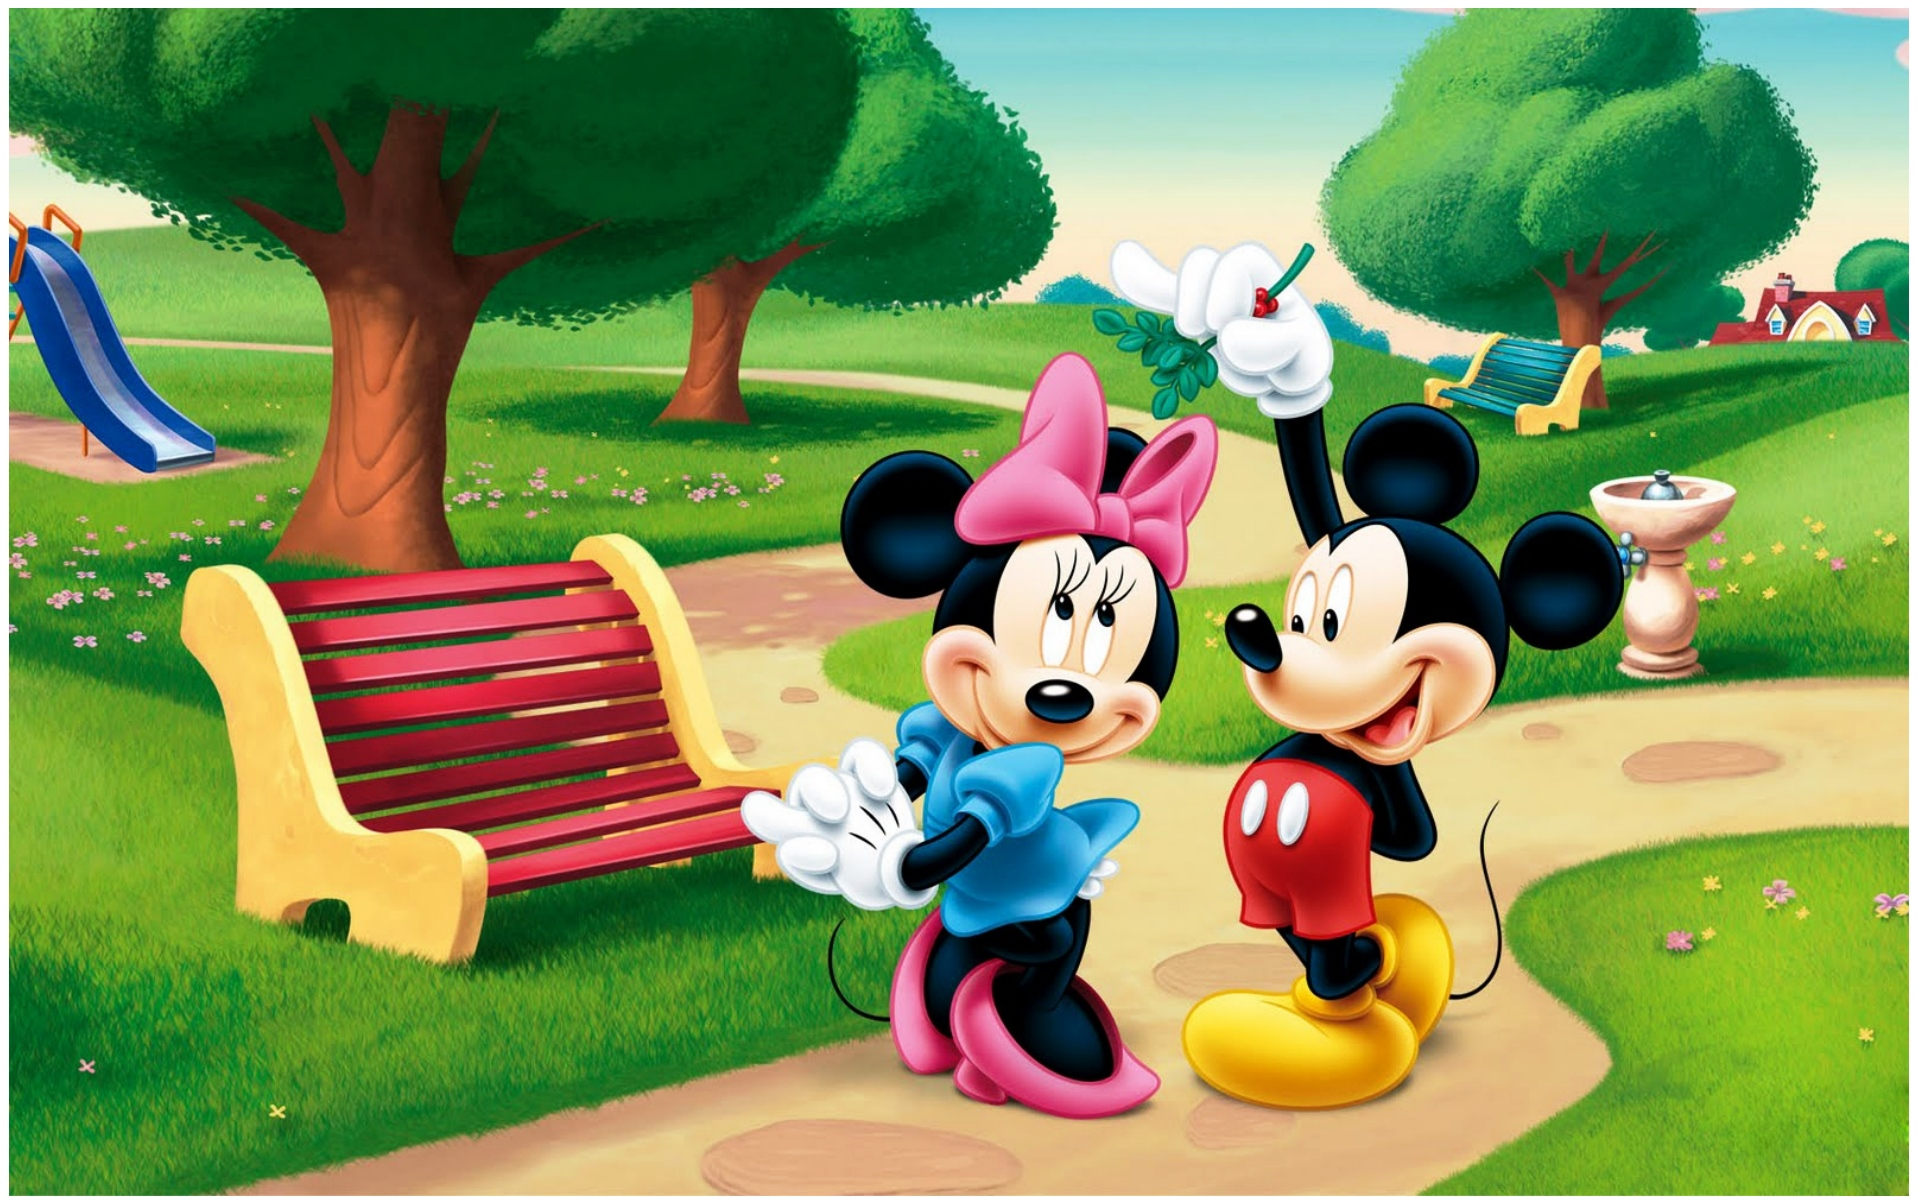 Download Mickey Mouse Cartoons HD Wallpapers Pictures Images Free For